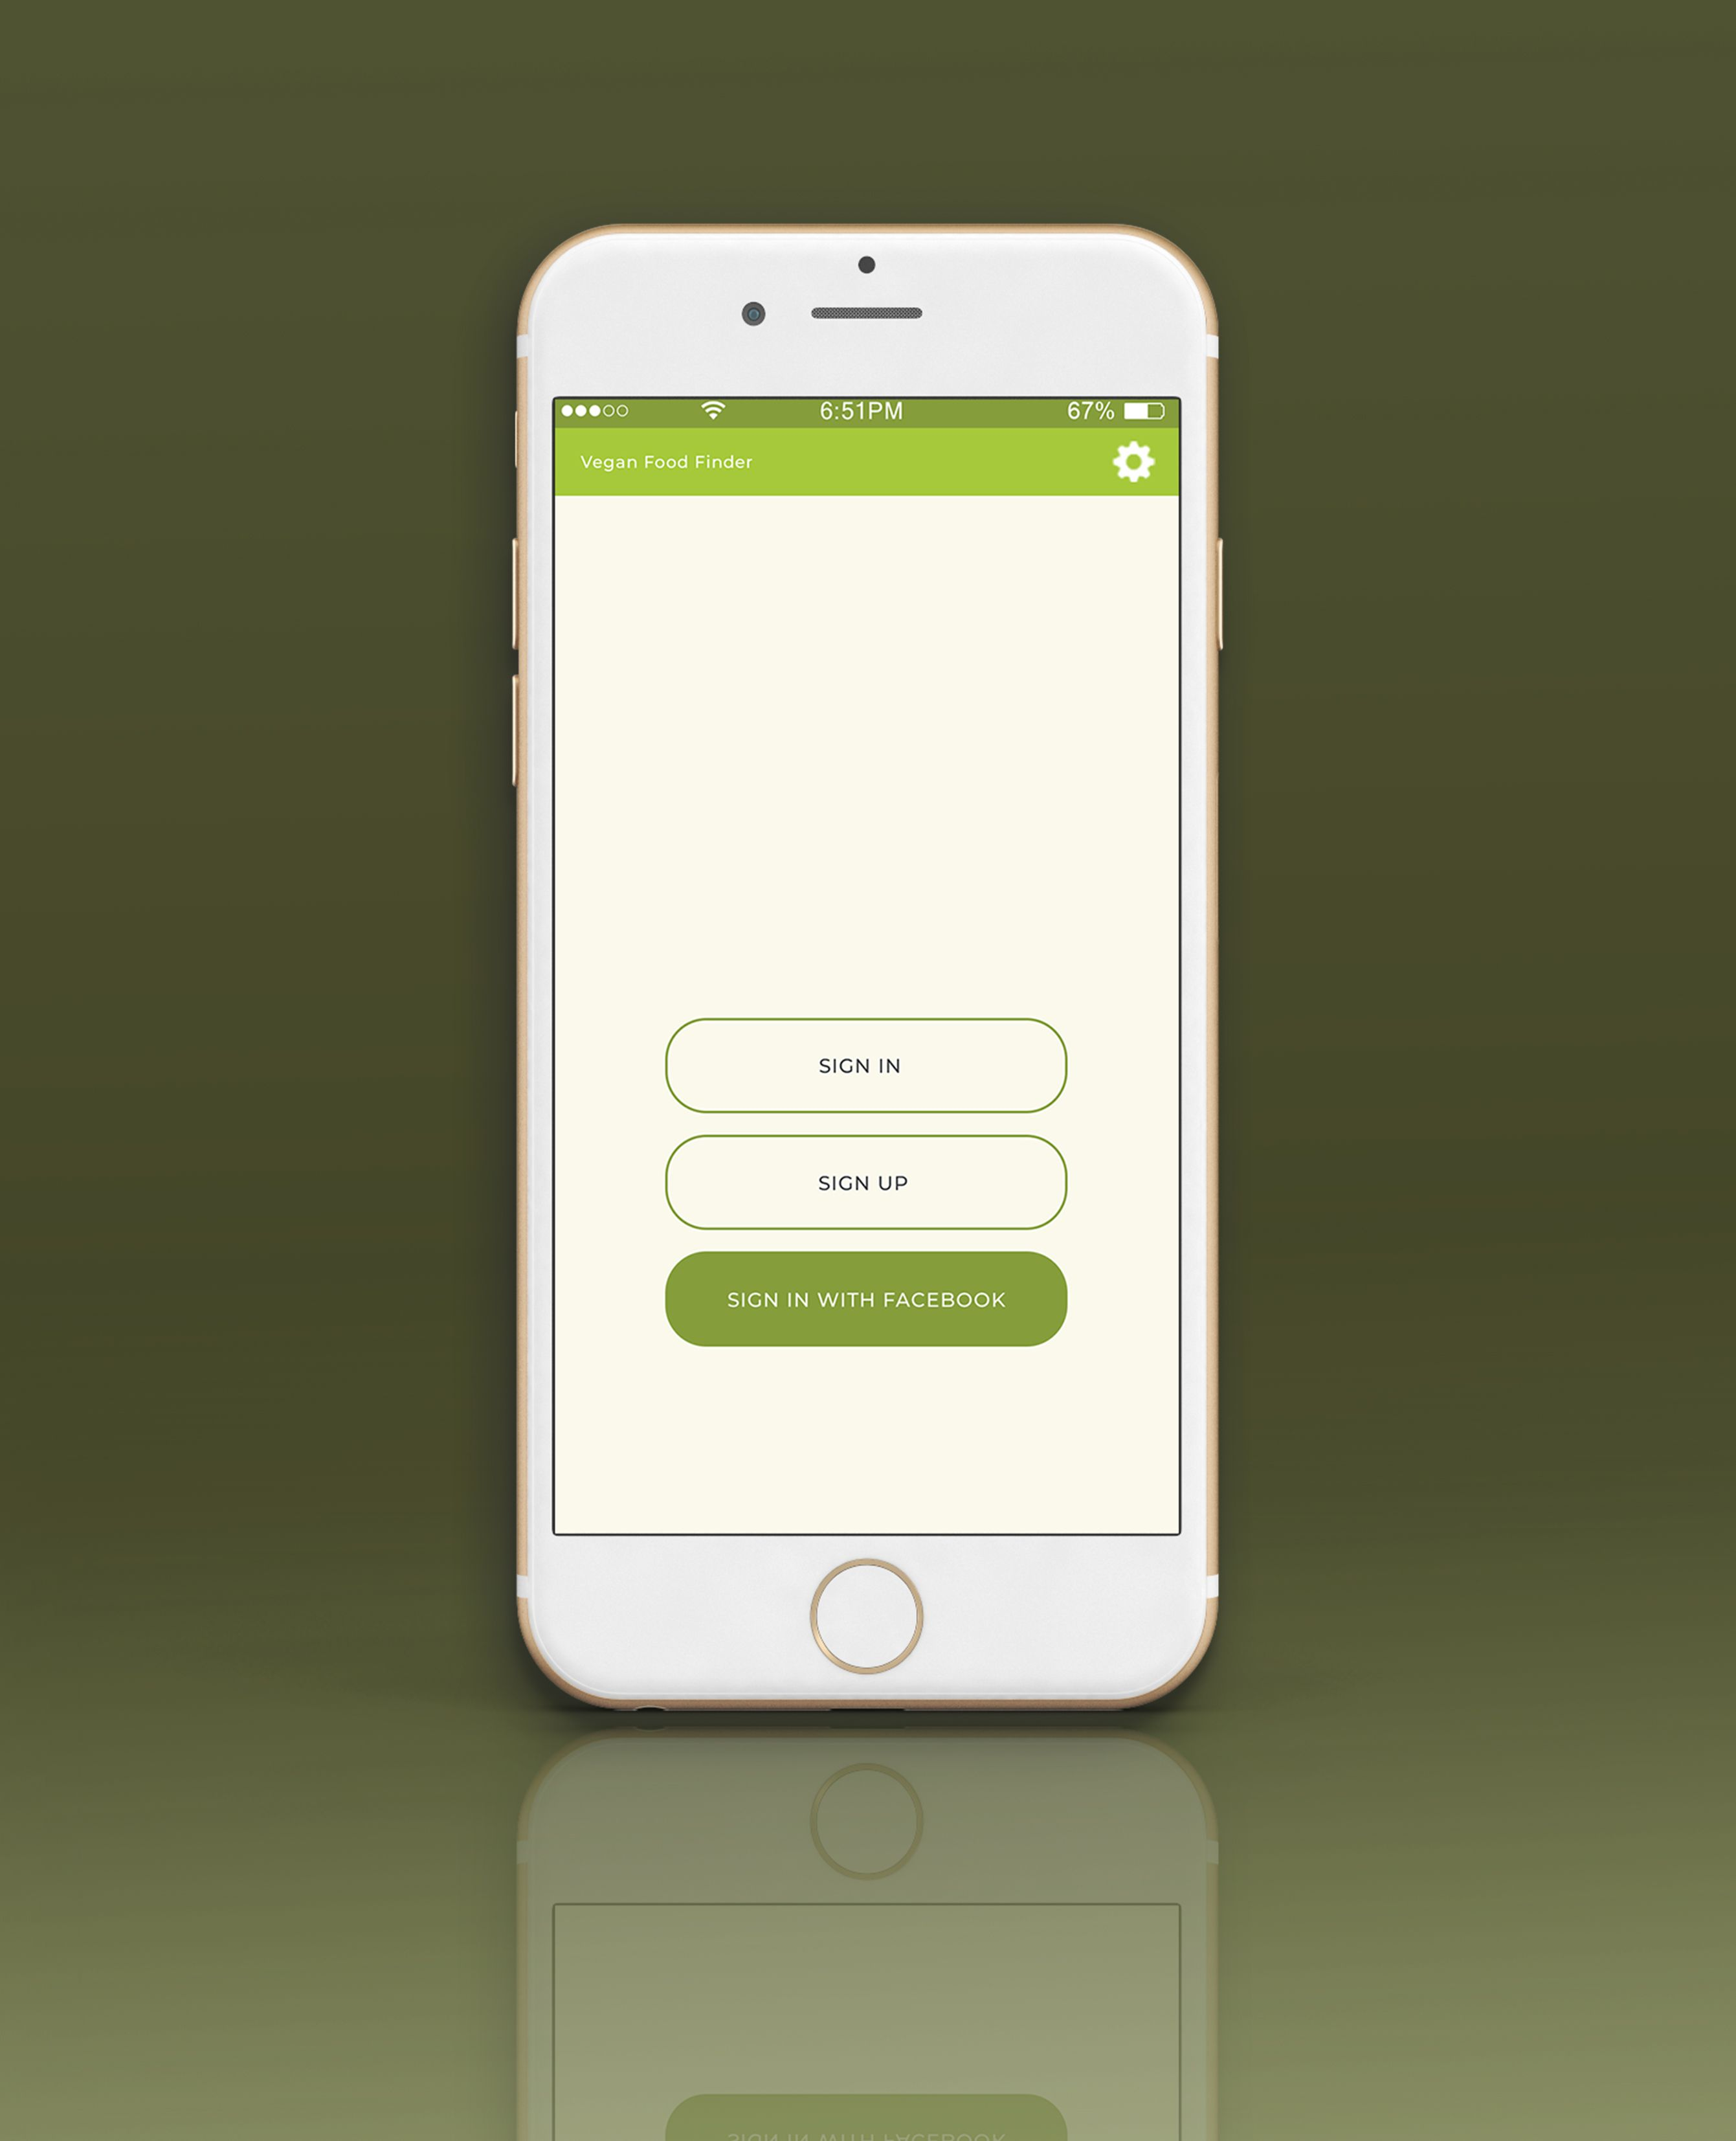 Mobile Vegan Food Finder App - 6  PSD Templates  Screenshot 3